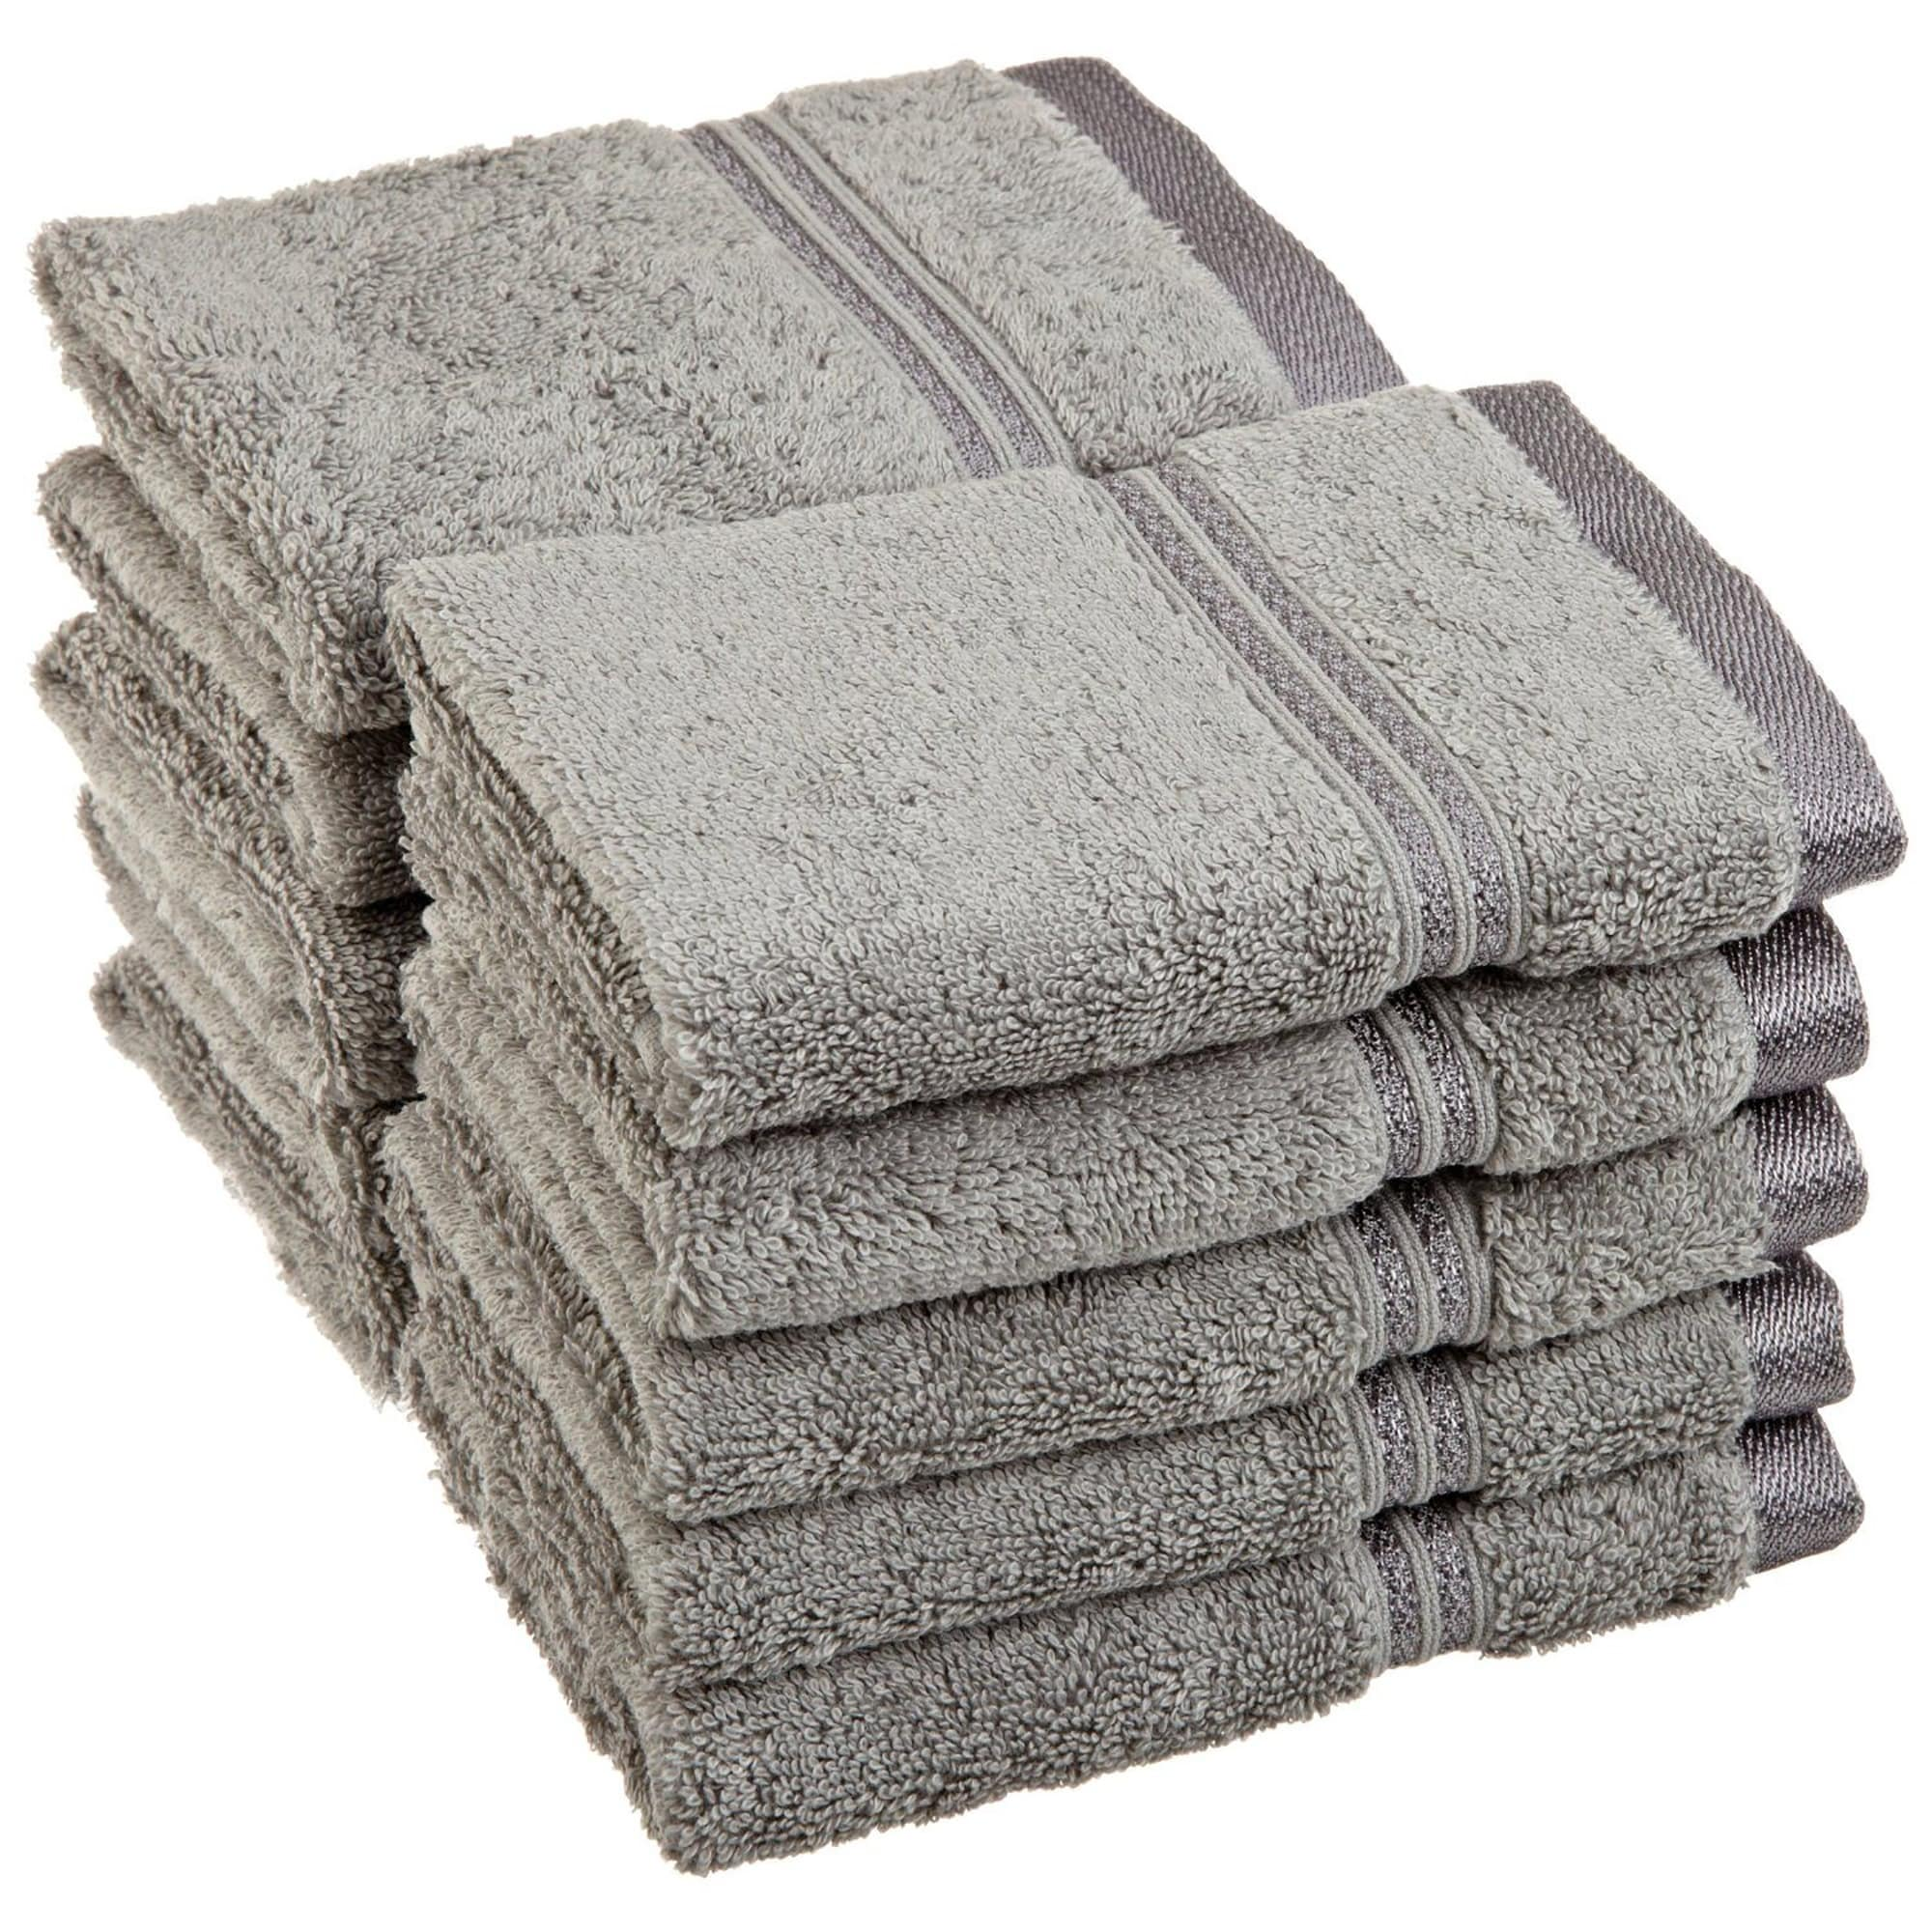 Luxurious Egyptian Cotton Face Cloth Towels (Set of 10) at Sears.com